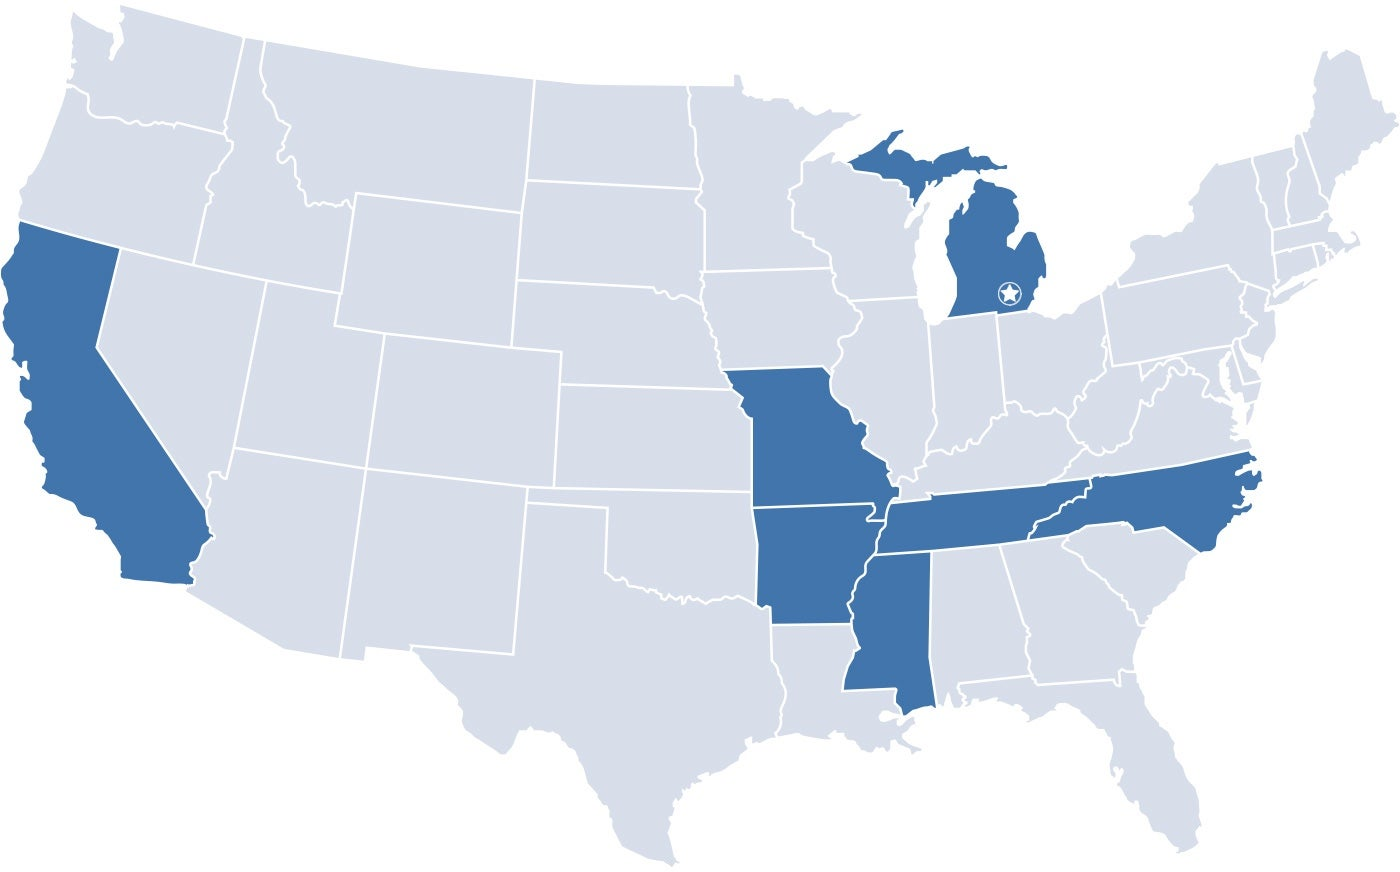 Map of states with La-Z-Boy headquarters, manufacturing and distribution centers